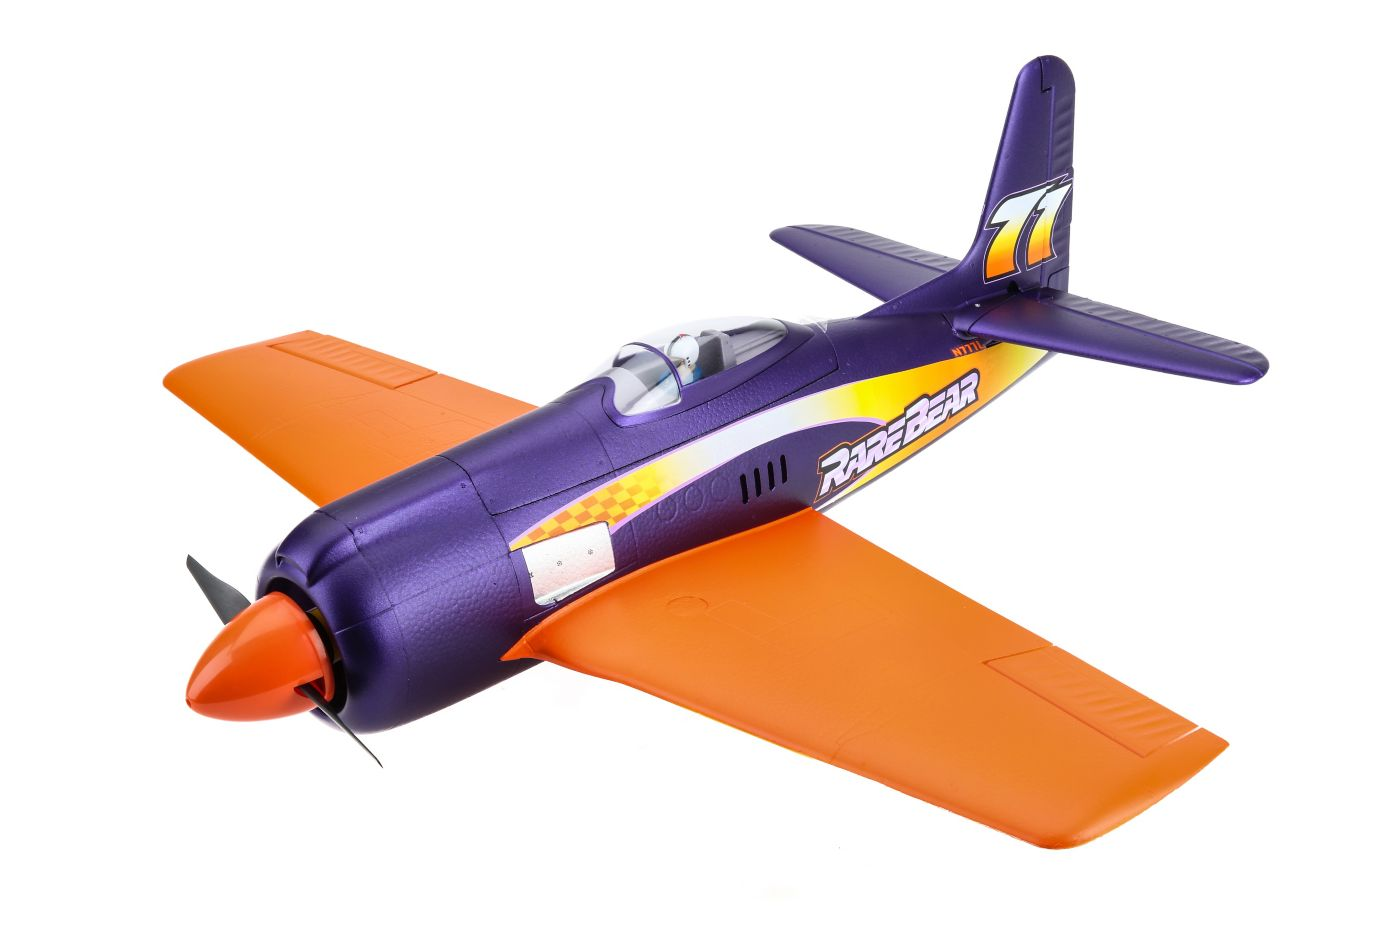 E-flite Rare Bear with AS3X� Technology BNF Basic - SNHE